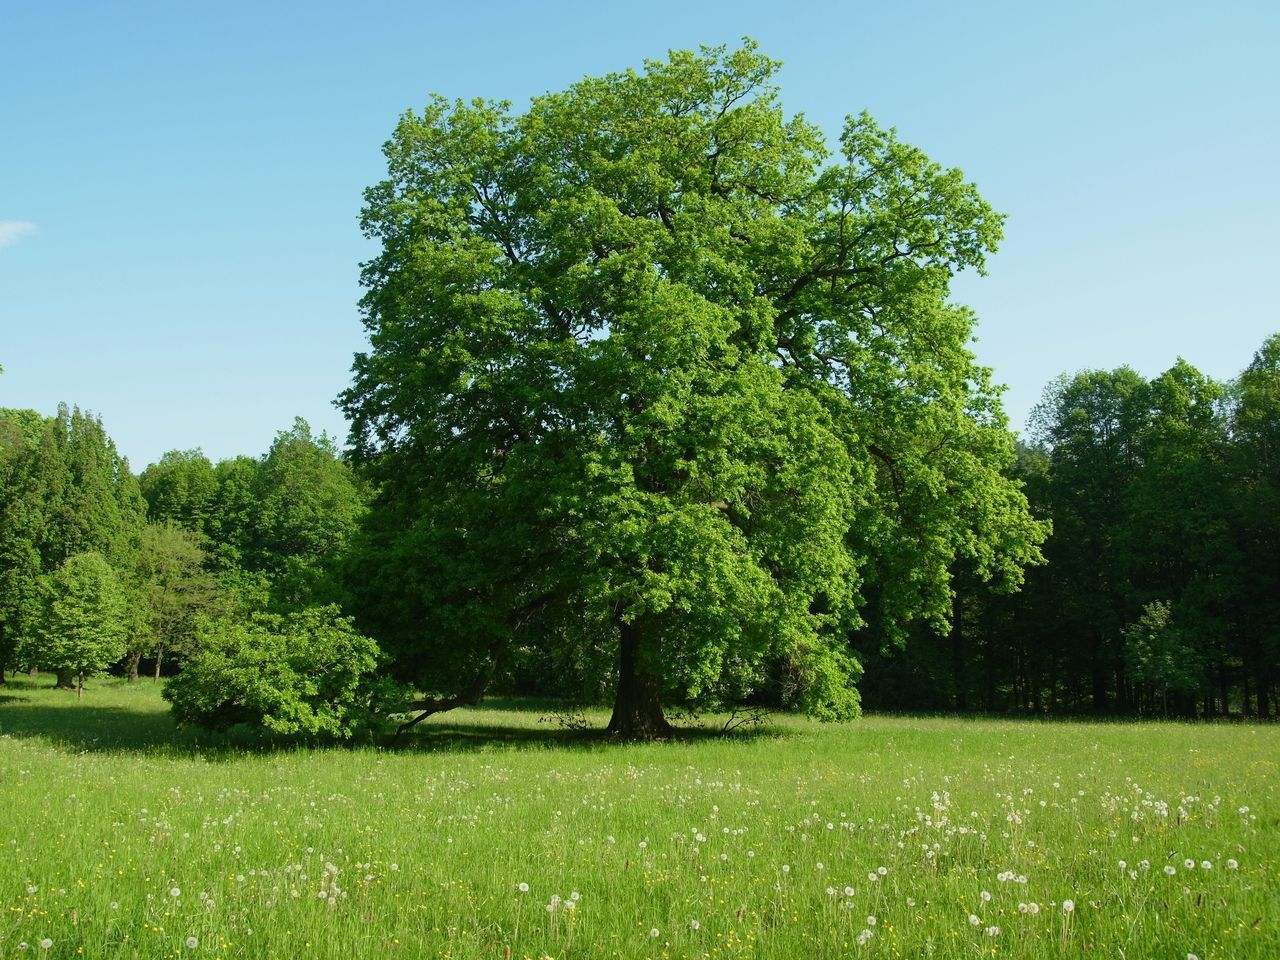 majesty Old Tree Beauty In Nature Clear Sky Day Field Freshness Grass Green Color Growth Landscape Meadows Nature No People Oak Outdoors Park Scenery Scenics Sky Tranquil Scene Tranquility Tree